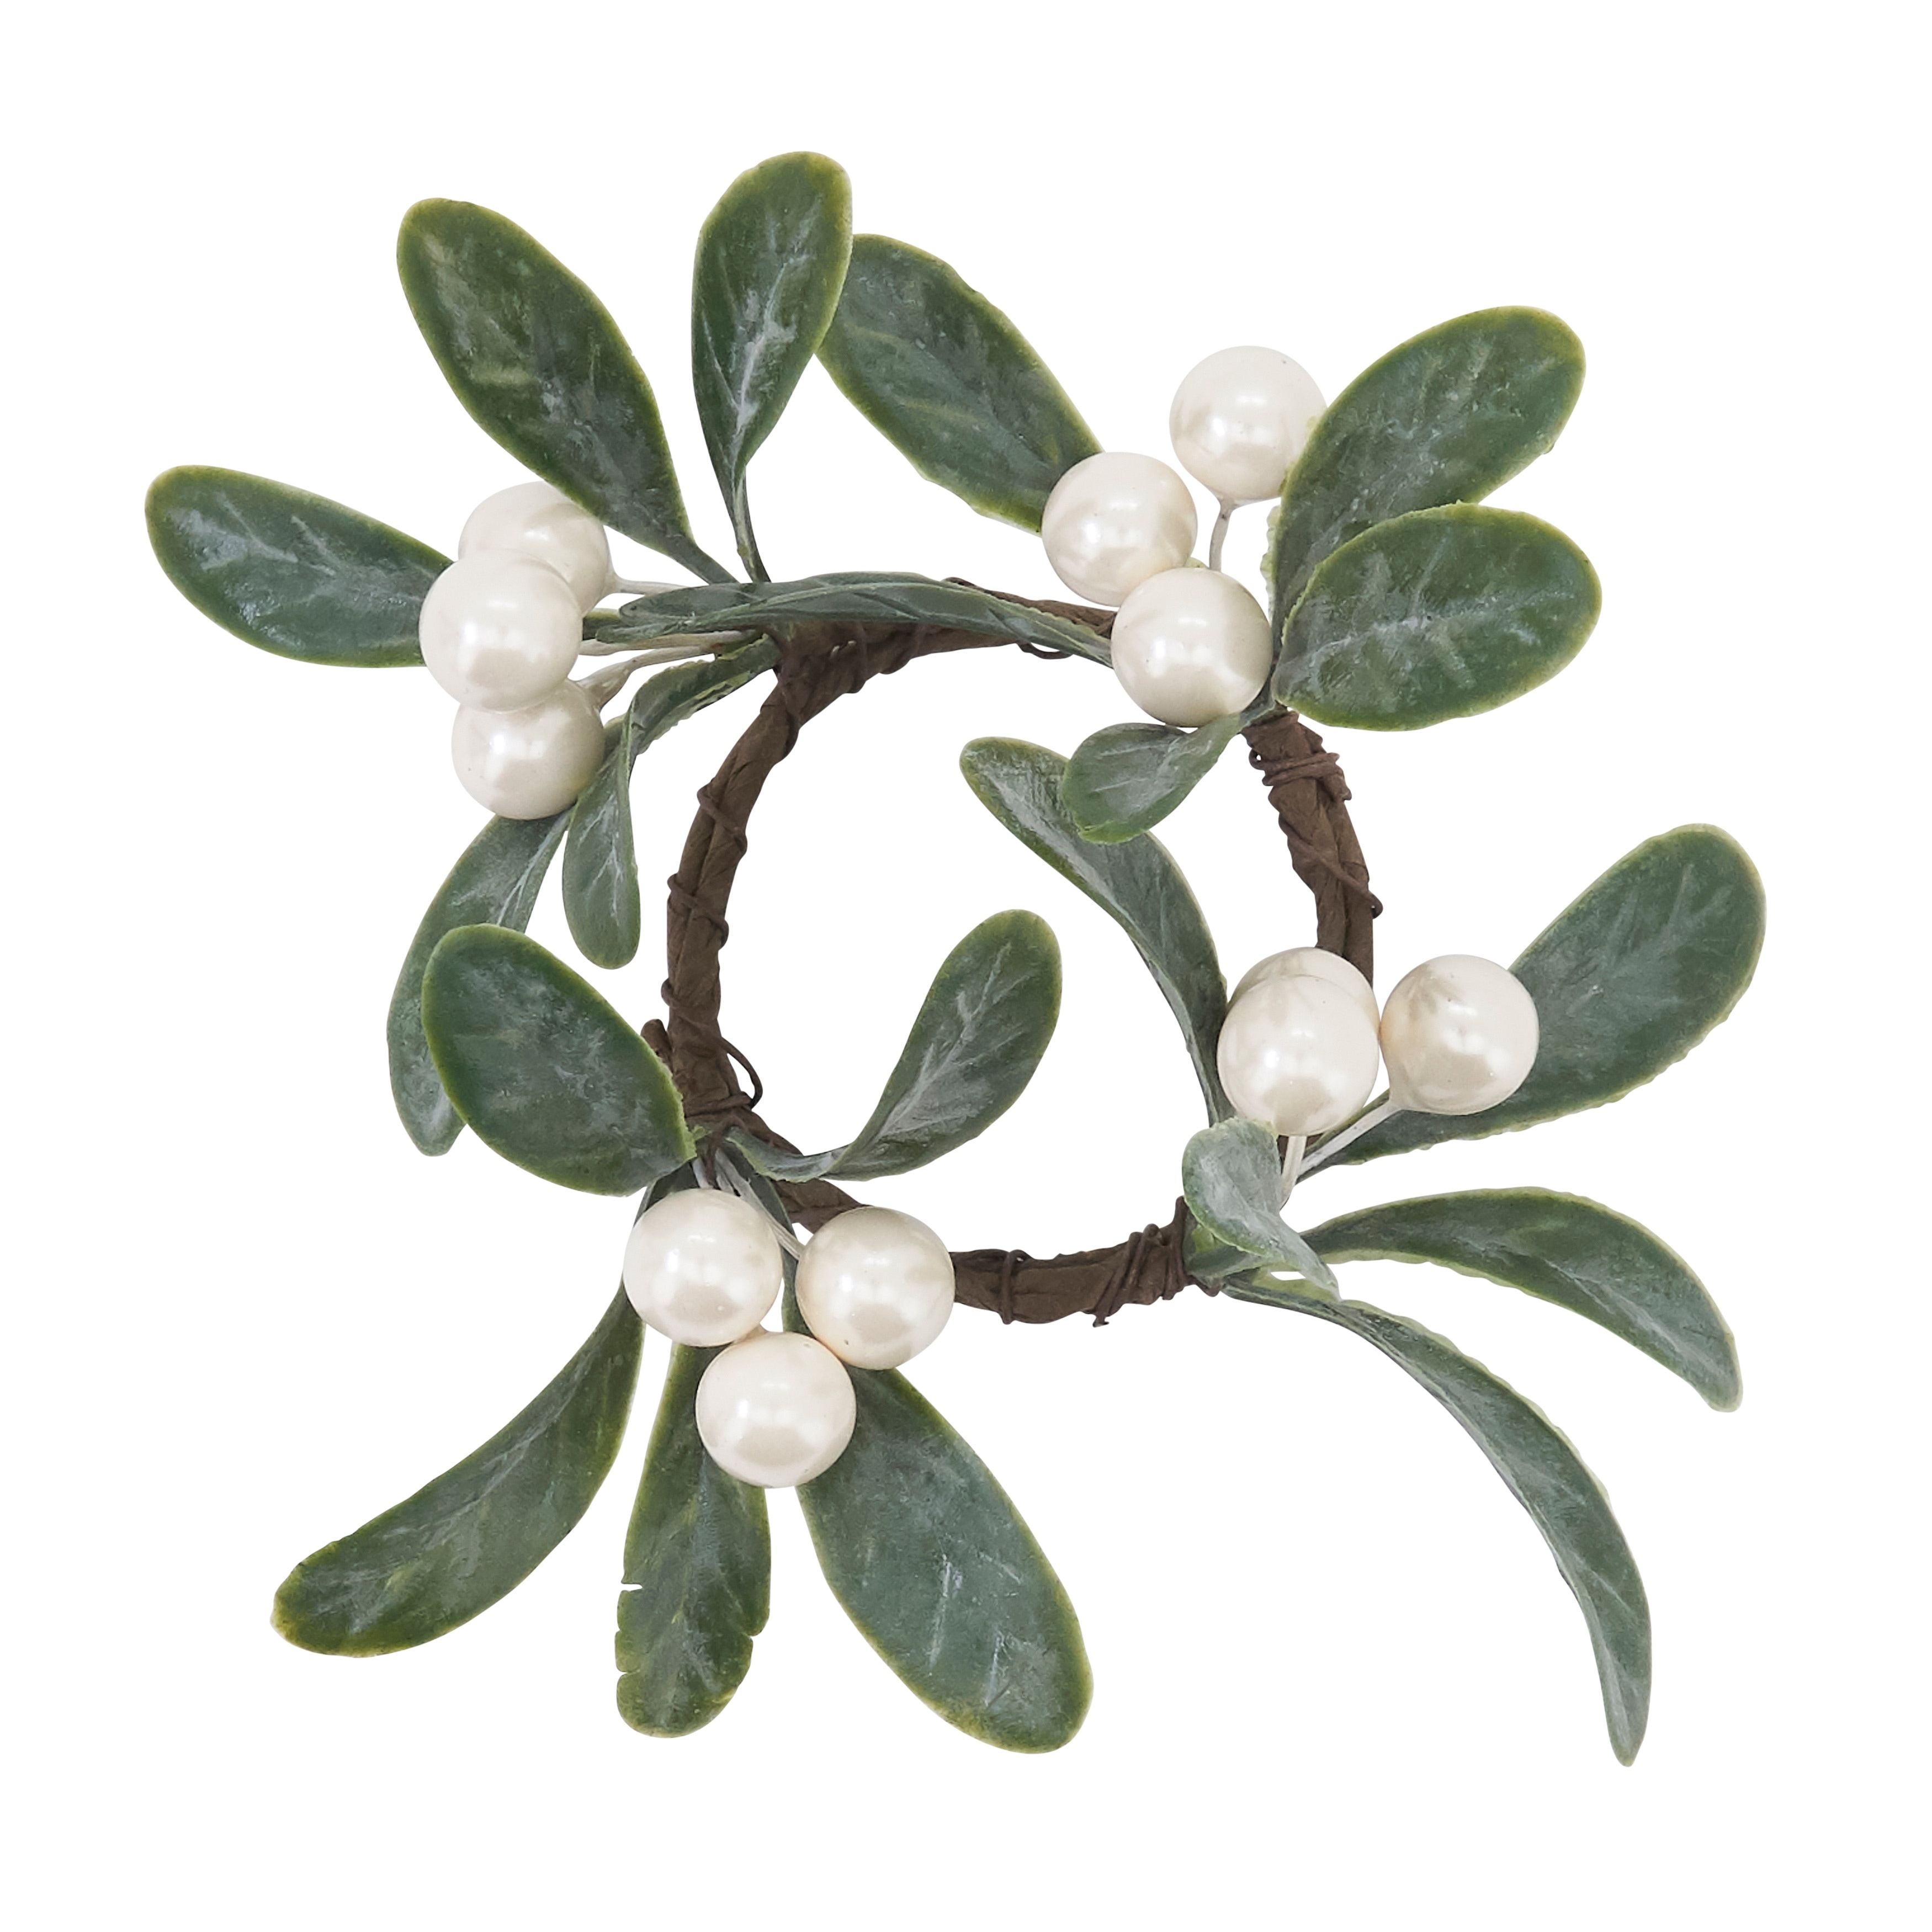 Holiday Napkin Rings With Mistletoe Design Set Of 4 Overstock 31431359